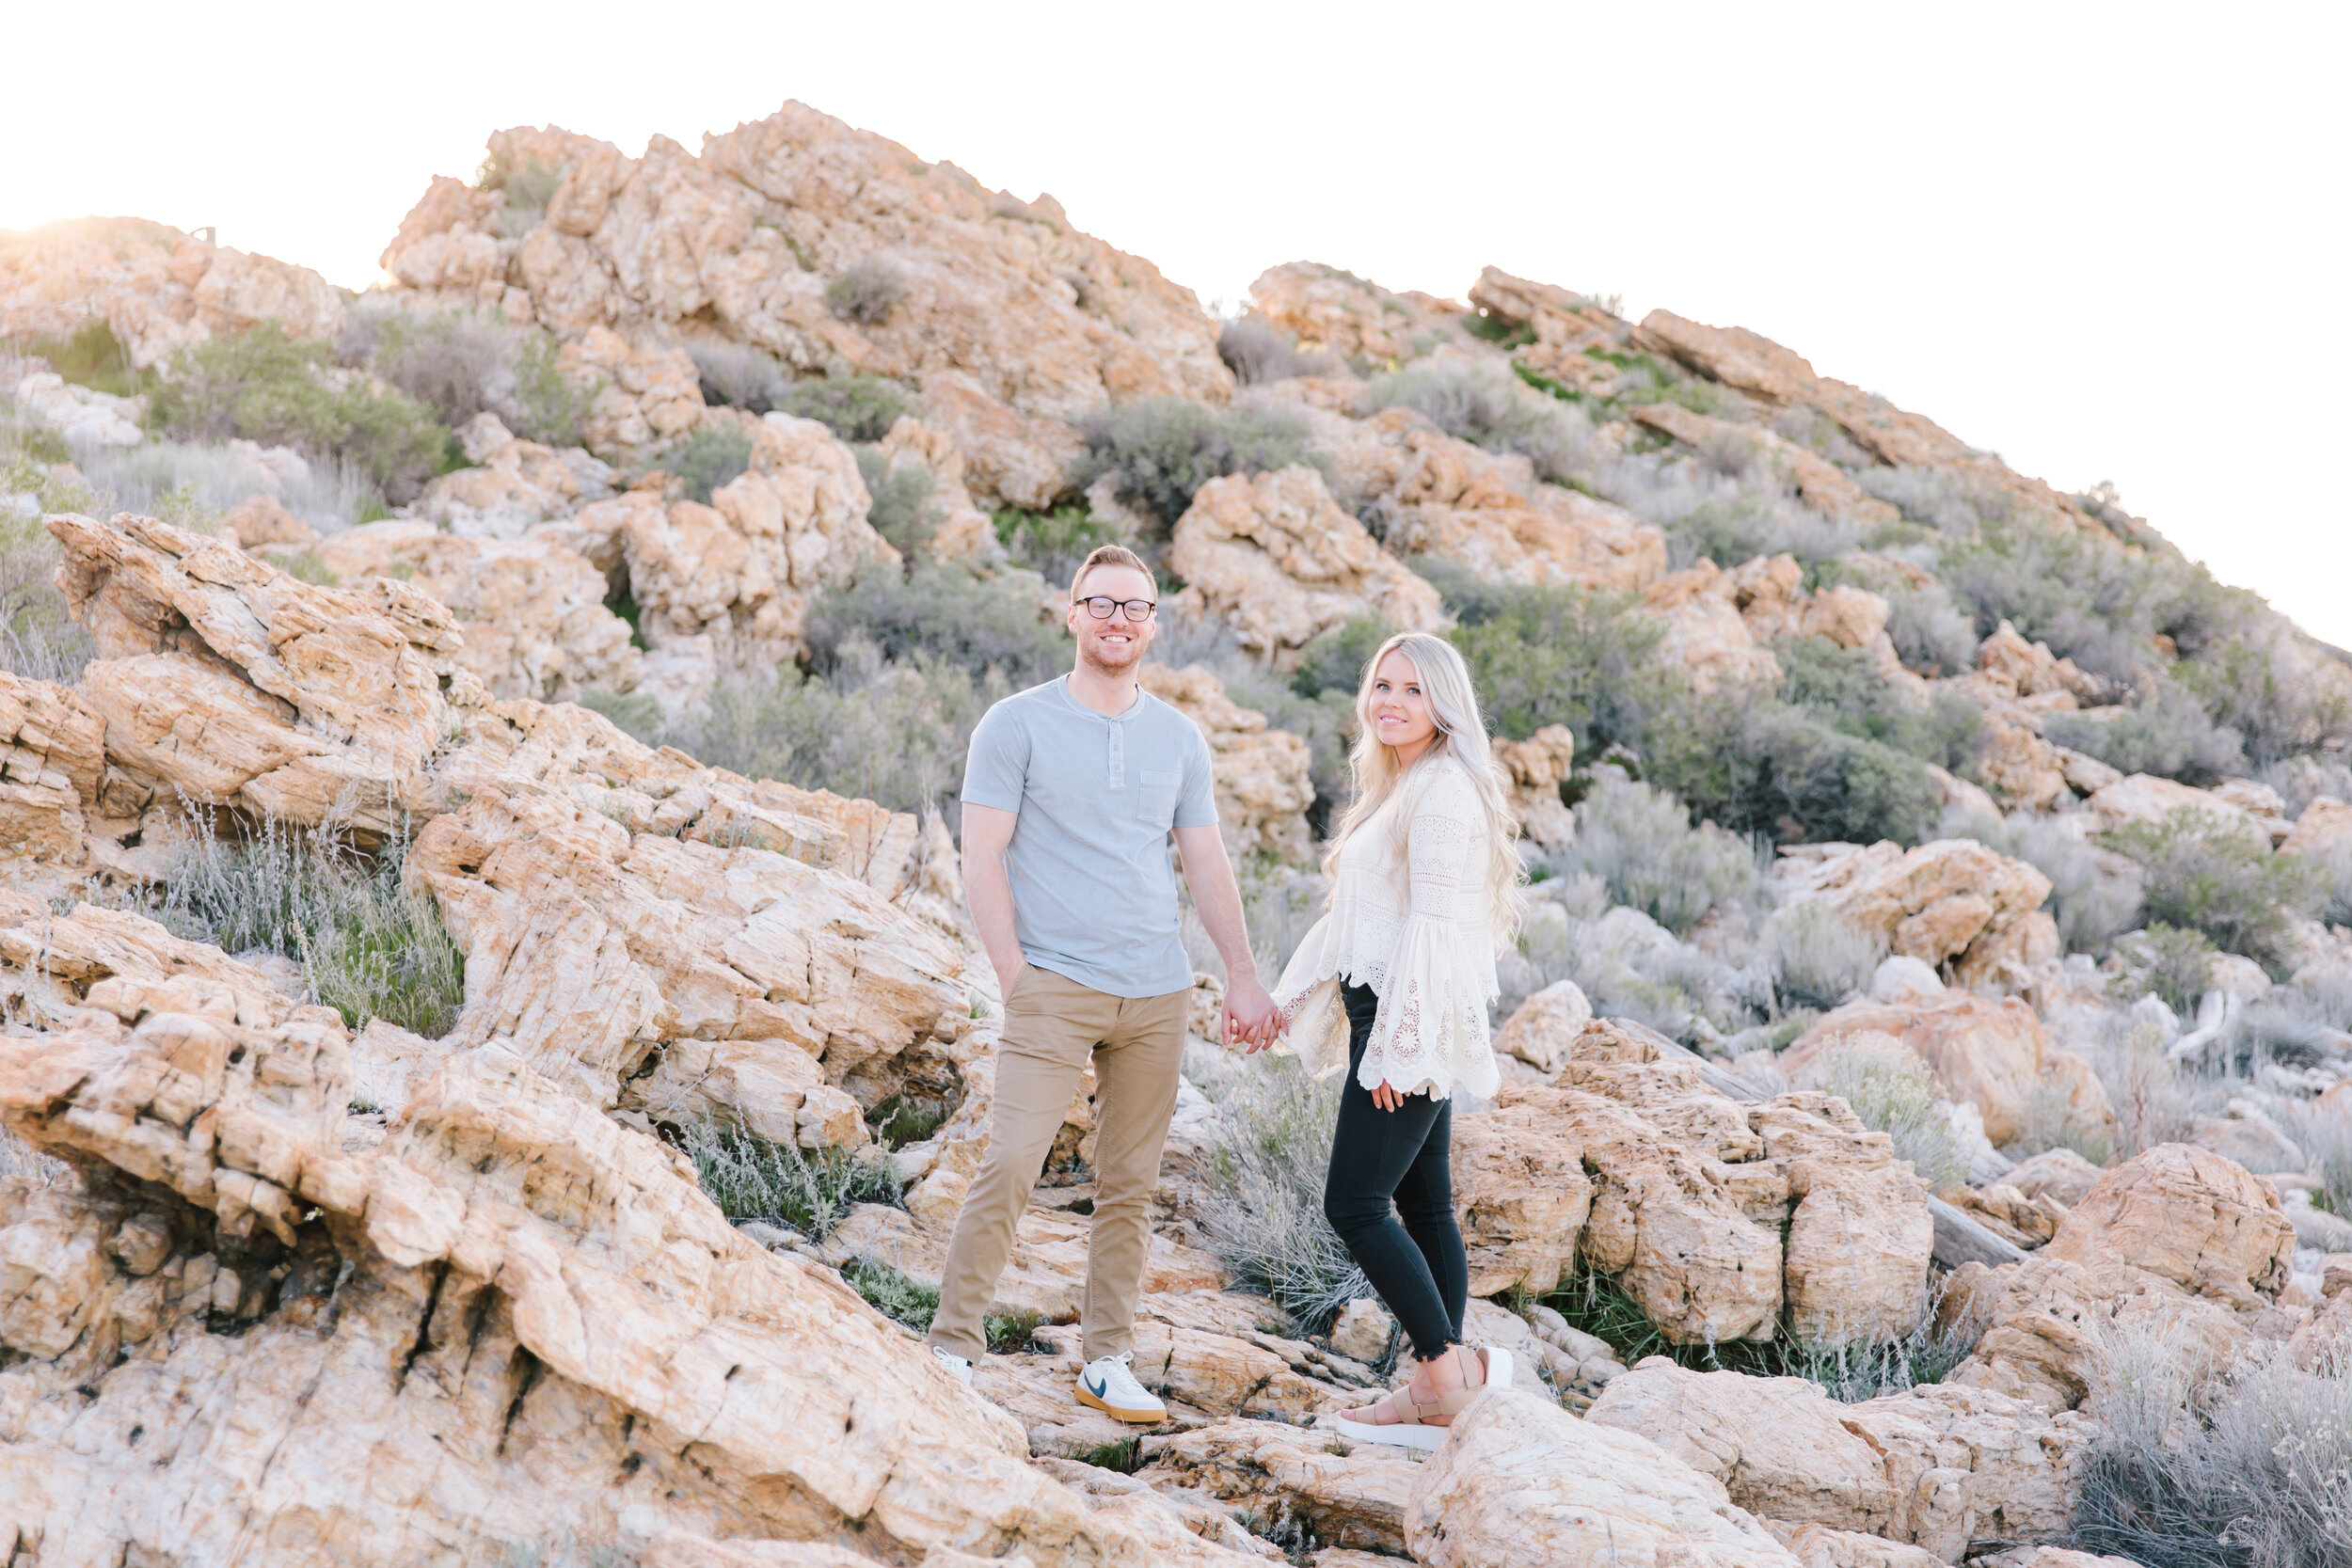 side of rock formation couple holding hands pose casual natural relaxed pose ideas #couplegoals #engagements rock formation location ideas antelope island utah rustic outdoor engagement ideas utah photographer clarity lane utah engagements serious pose goals in nature #antelopeisland #couplekissing #engagementoutfitinspo #locationinspo #romantic #outside #engagementposes #engagementideas #weddingring